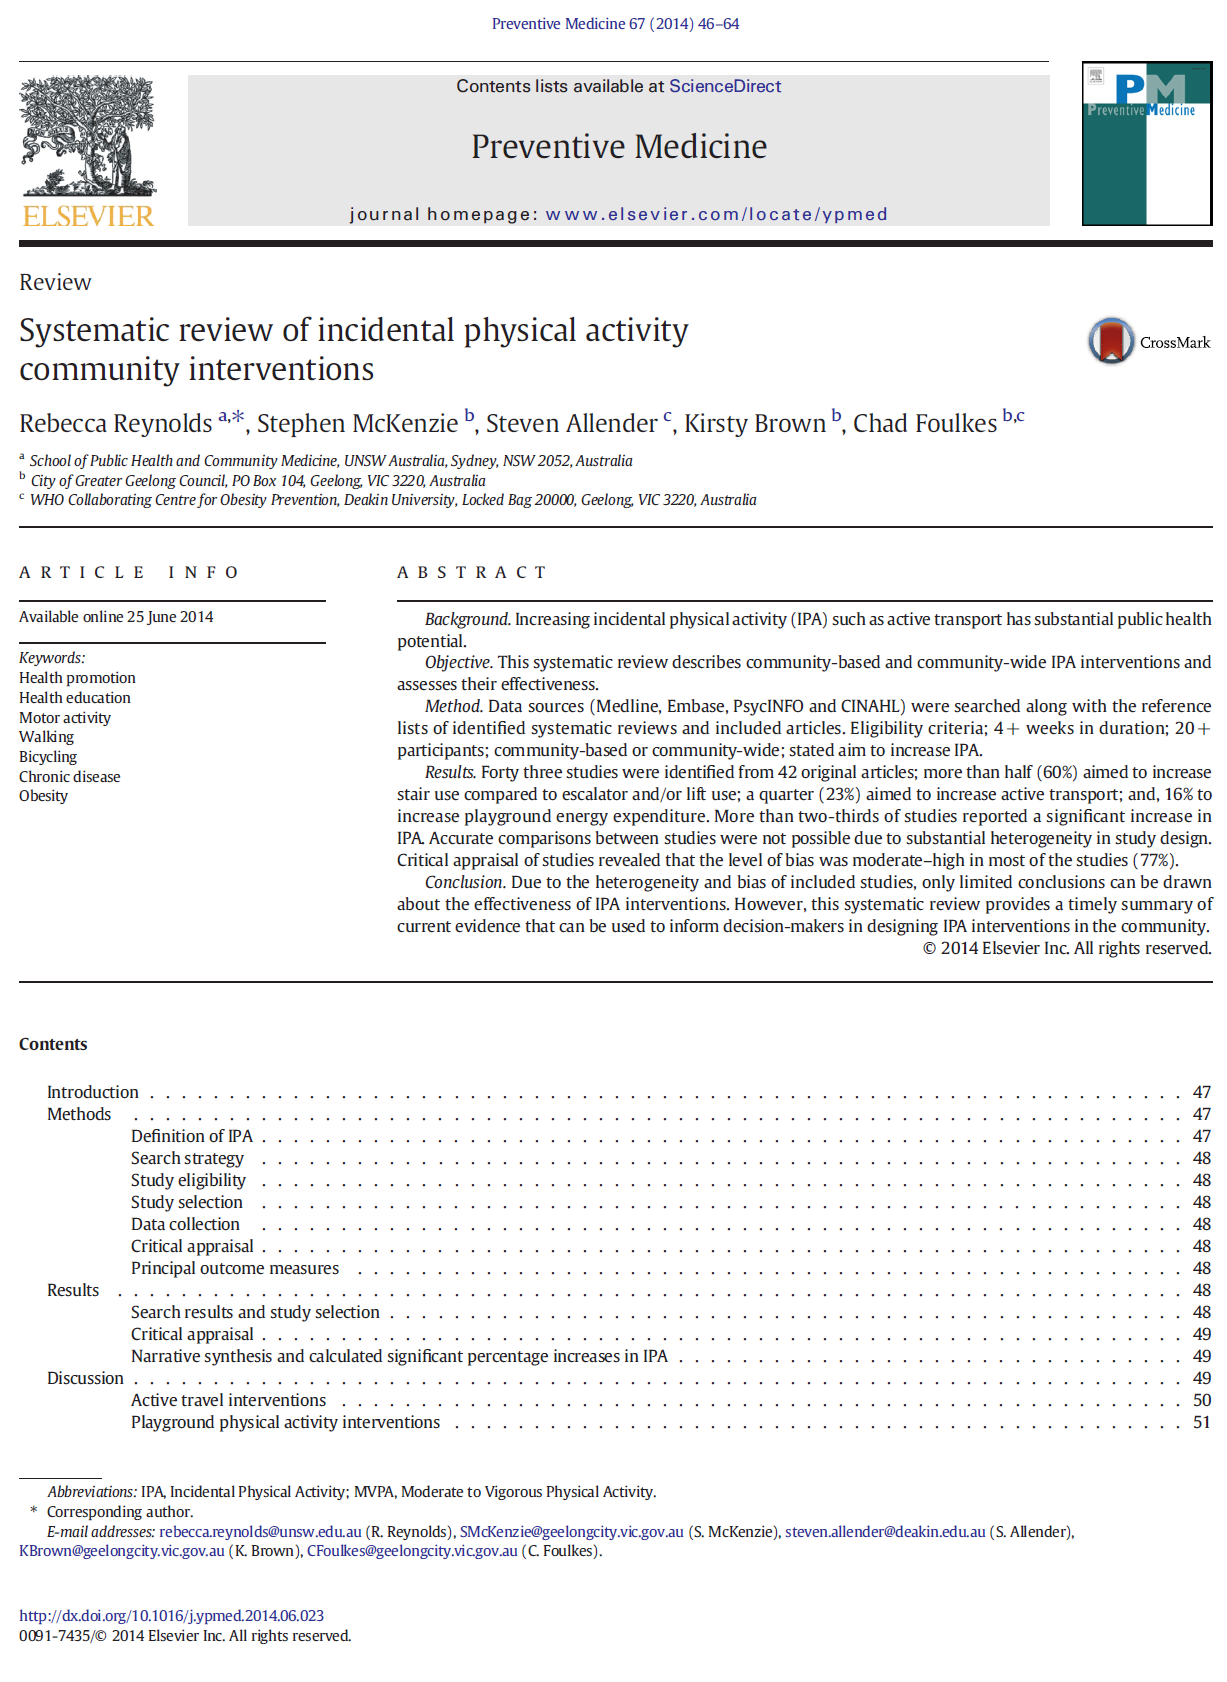 Systematic Review of incidental physical activity community interventions